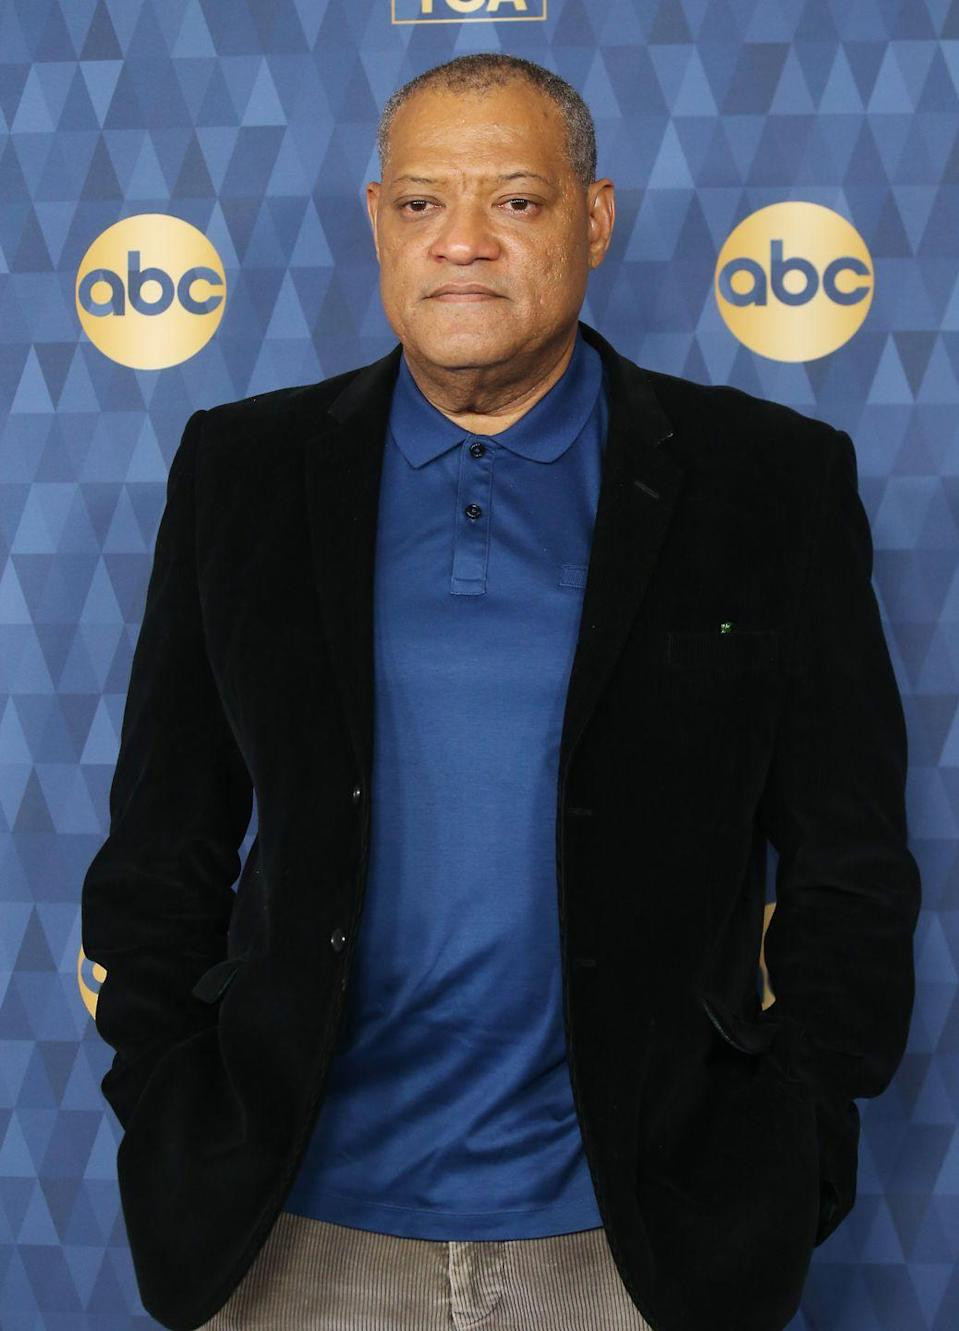 <p><strong>Birthday: </strong>July 30</p><p><strong>Age Turning: </strong>59</p><p>The iconic actor (<em>The Matrix, Boyz n the Hood, </em><em>Black-ish</em>) celebrates his 59th birthday in 2020.<br></p>